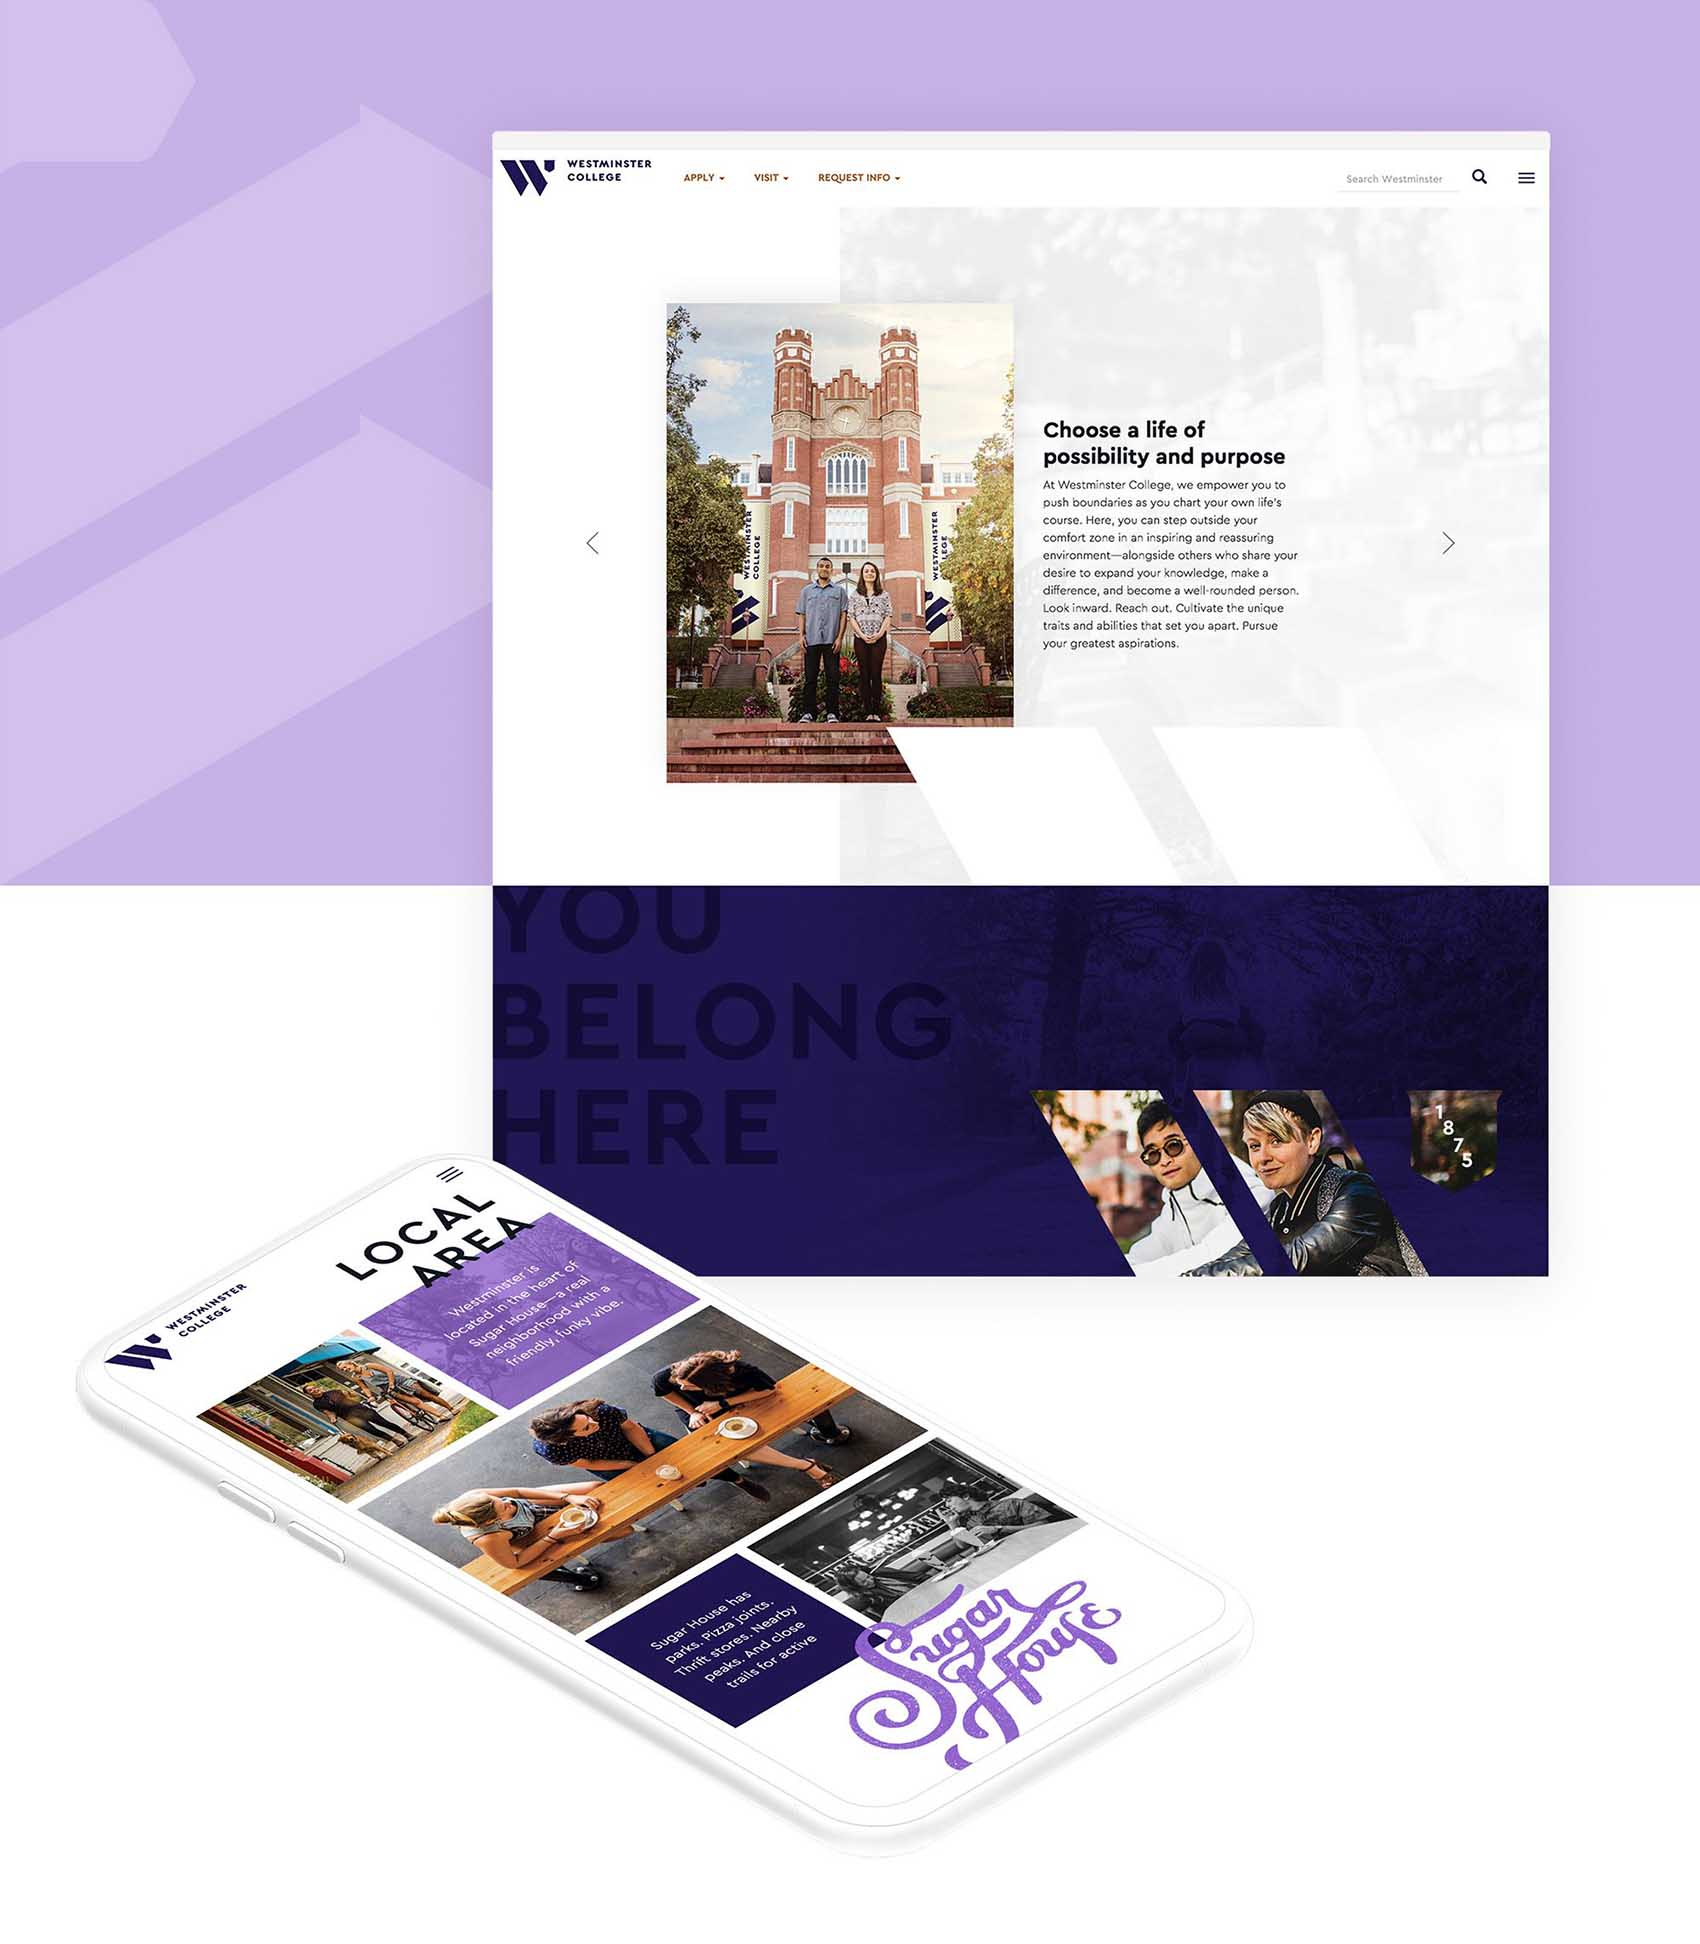 Westminster Web and Mobile-friendly site